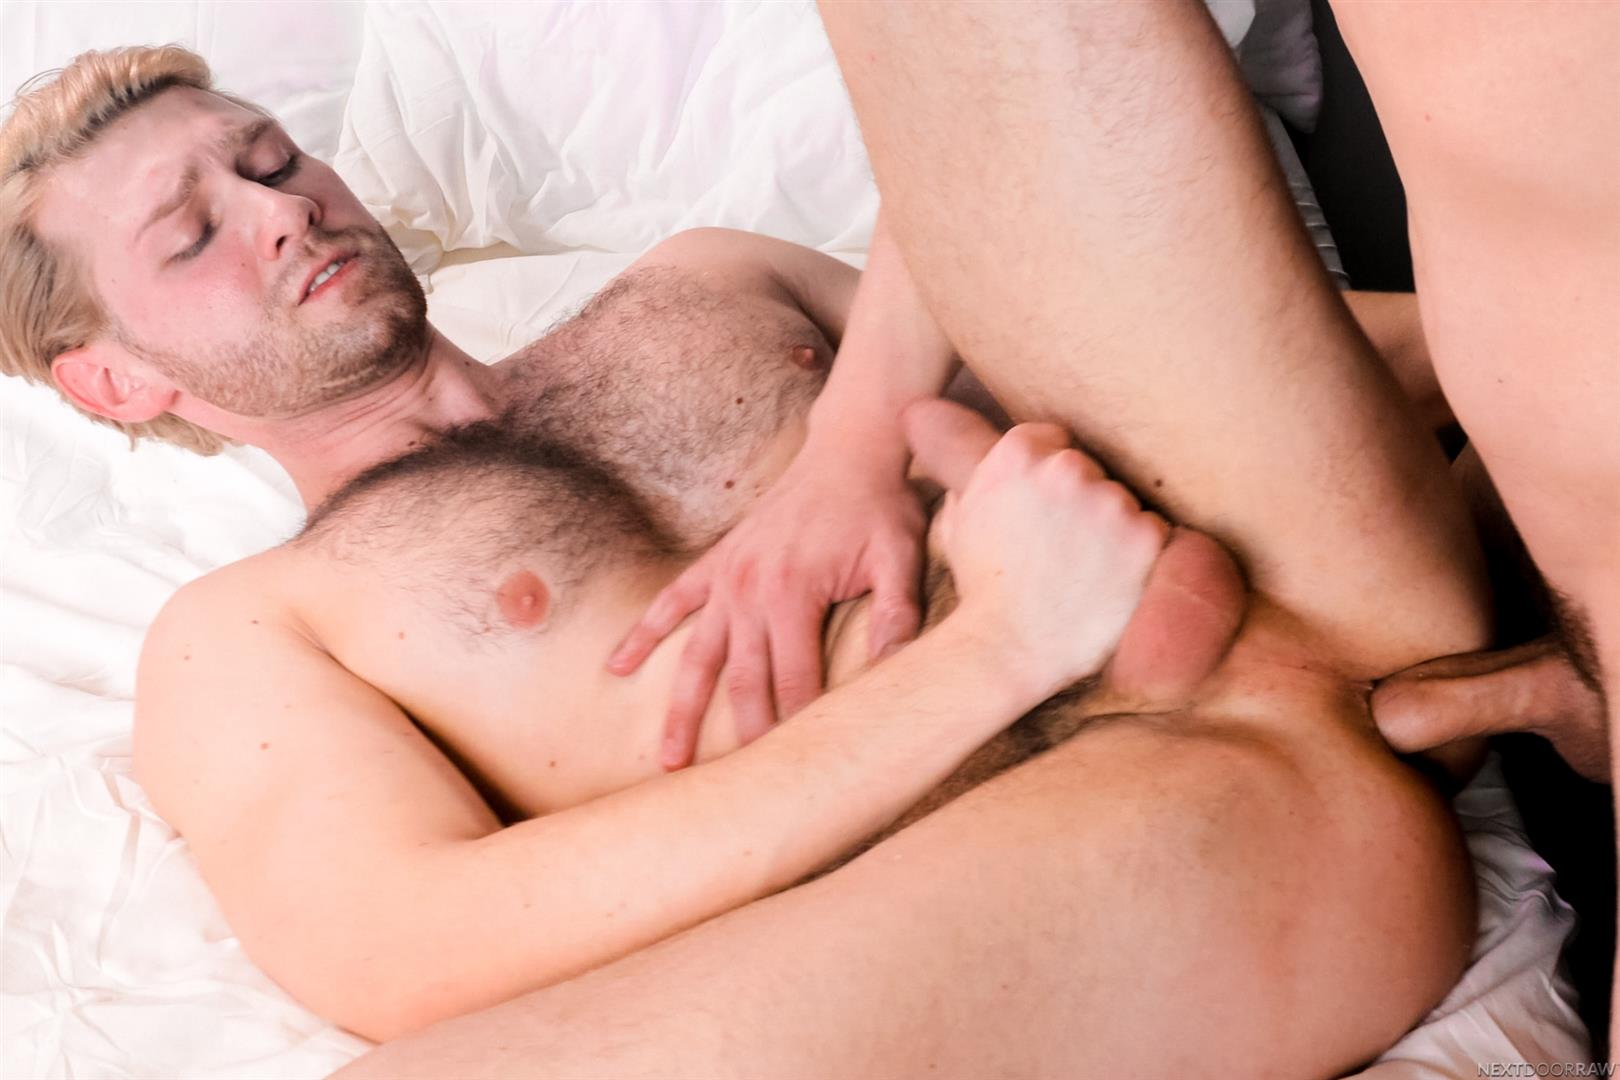 Next-Door-Raw-Johnny-Hill-and-Jacob-Peterson-Straight-Best-Friends-First-Time-Gay-Bareback-Sex-13 Bareback Fucking My Hairy Uncut Straight Best Friend